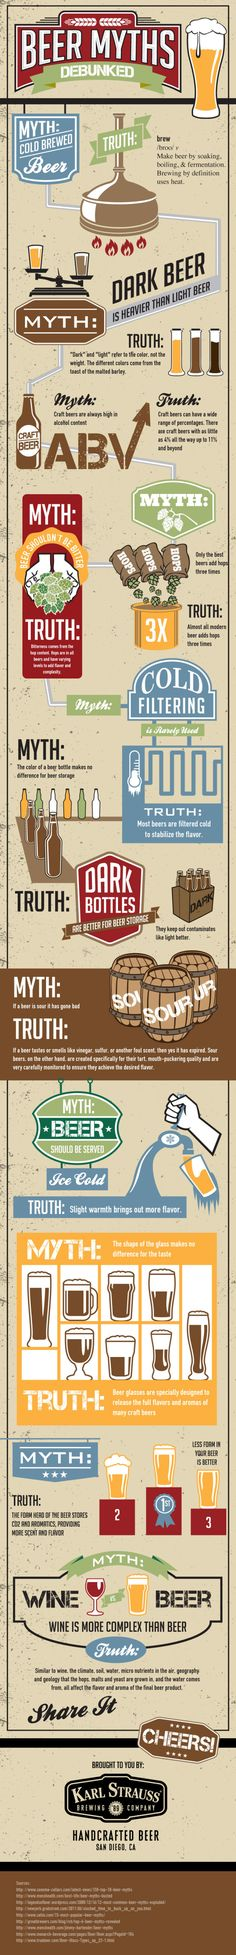 Infographics - Beer Myths Debunked. @Yves Paul Scherer Eduard Patterson III